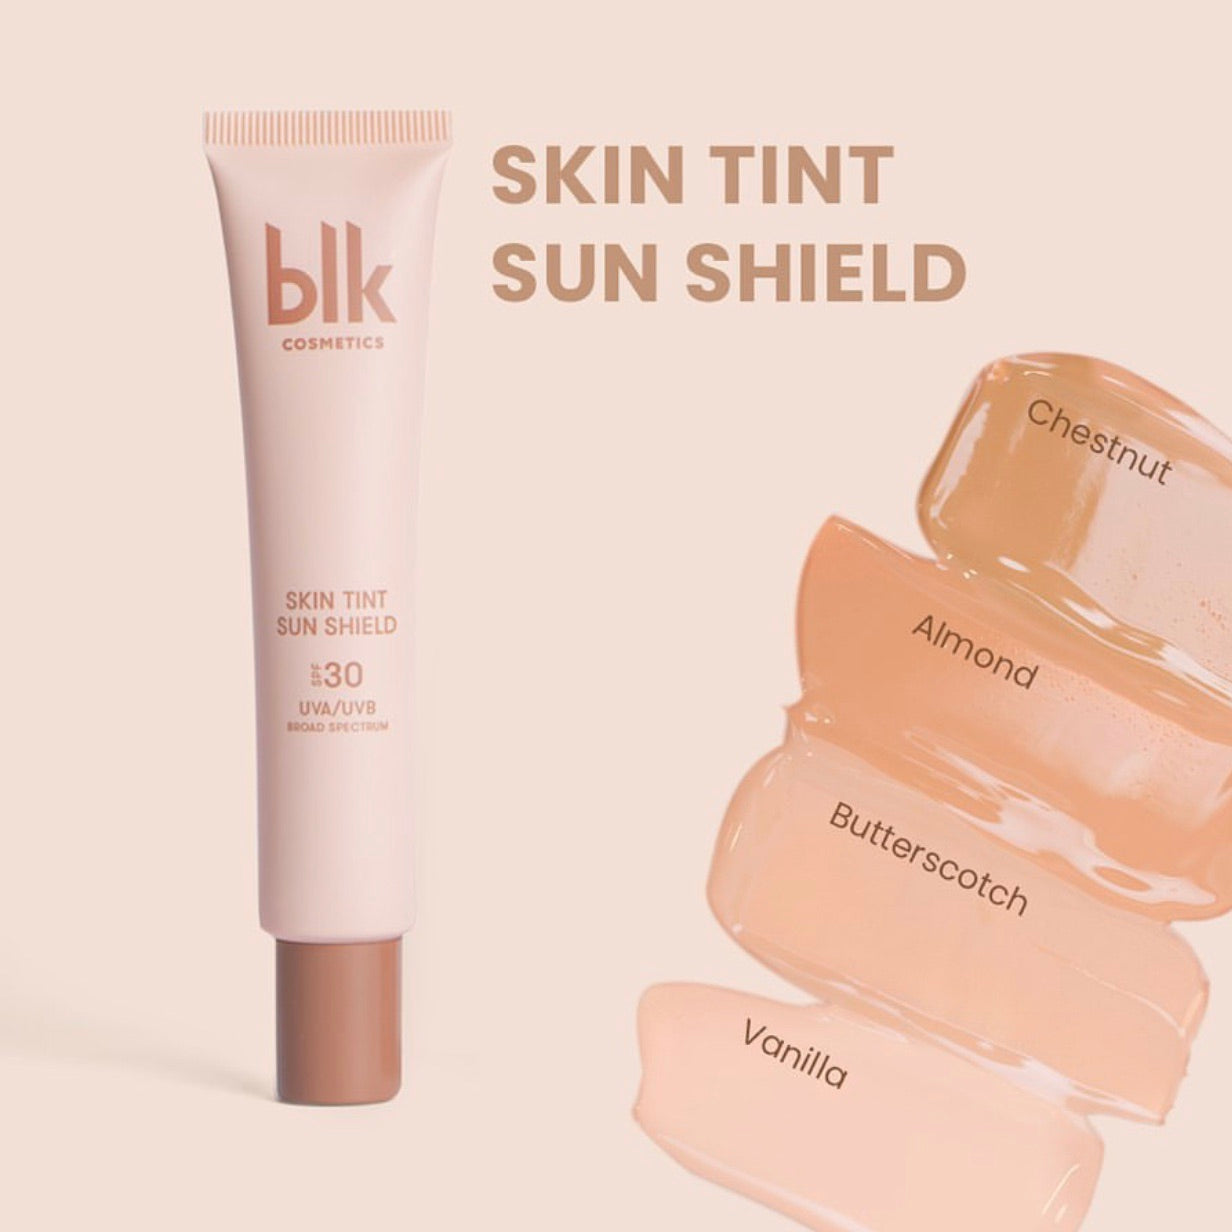 blk cosmetics Skintint Sun Shield SPF 30 - Chestnut